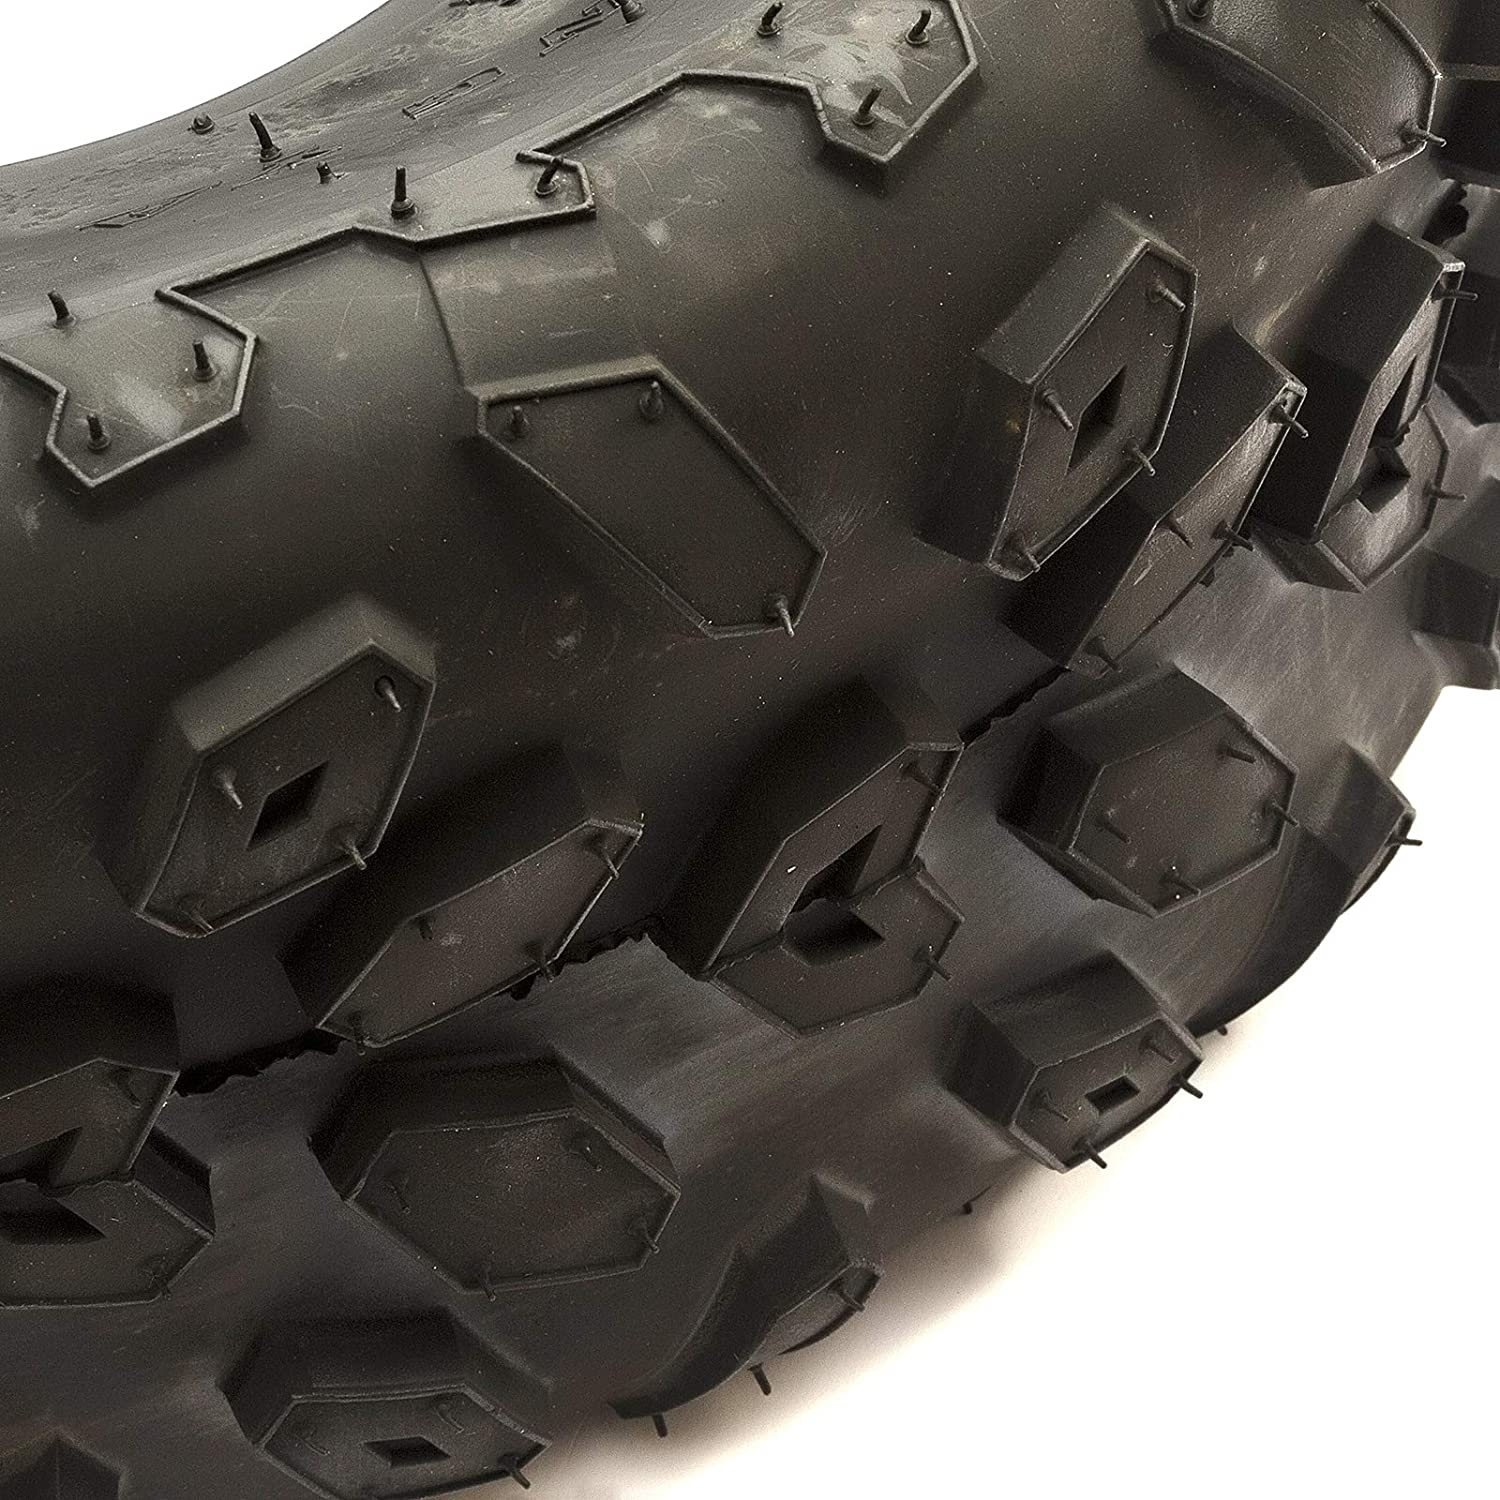 Tyre 19x7-8 19x7.00-8 8 Inch Offroad Knobbly Tread Panda Quad Bike ATV